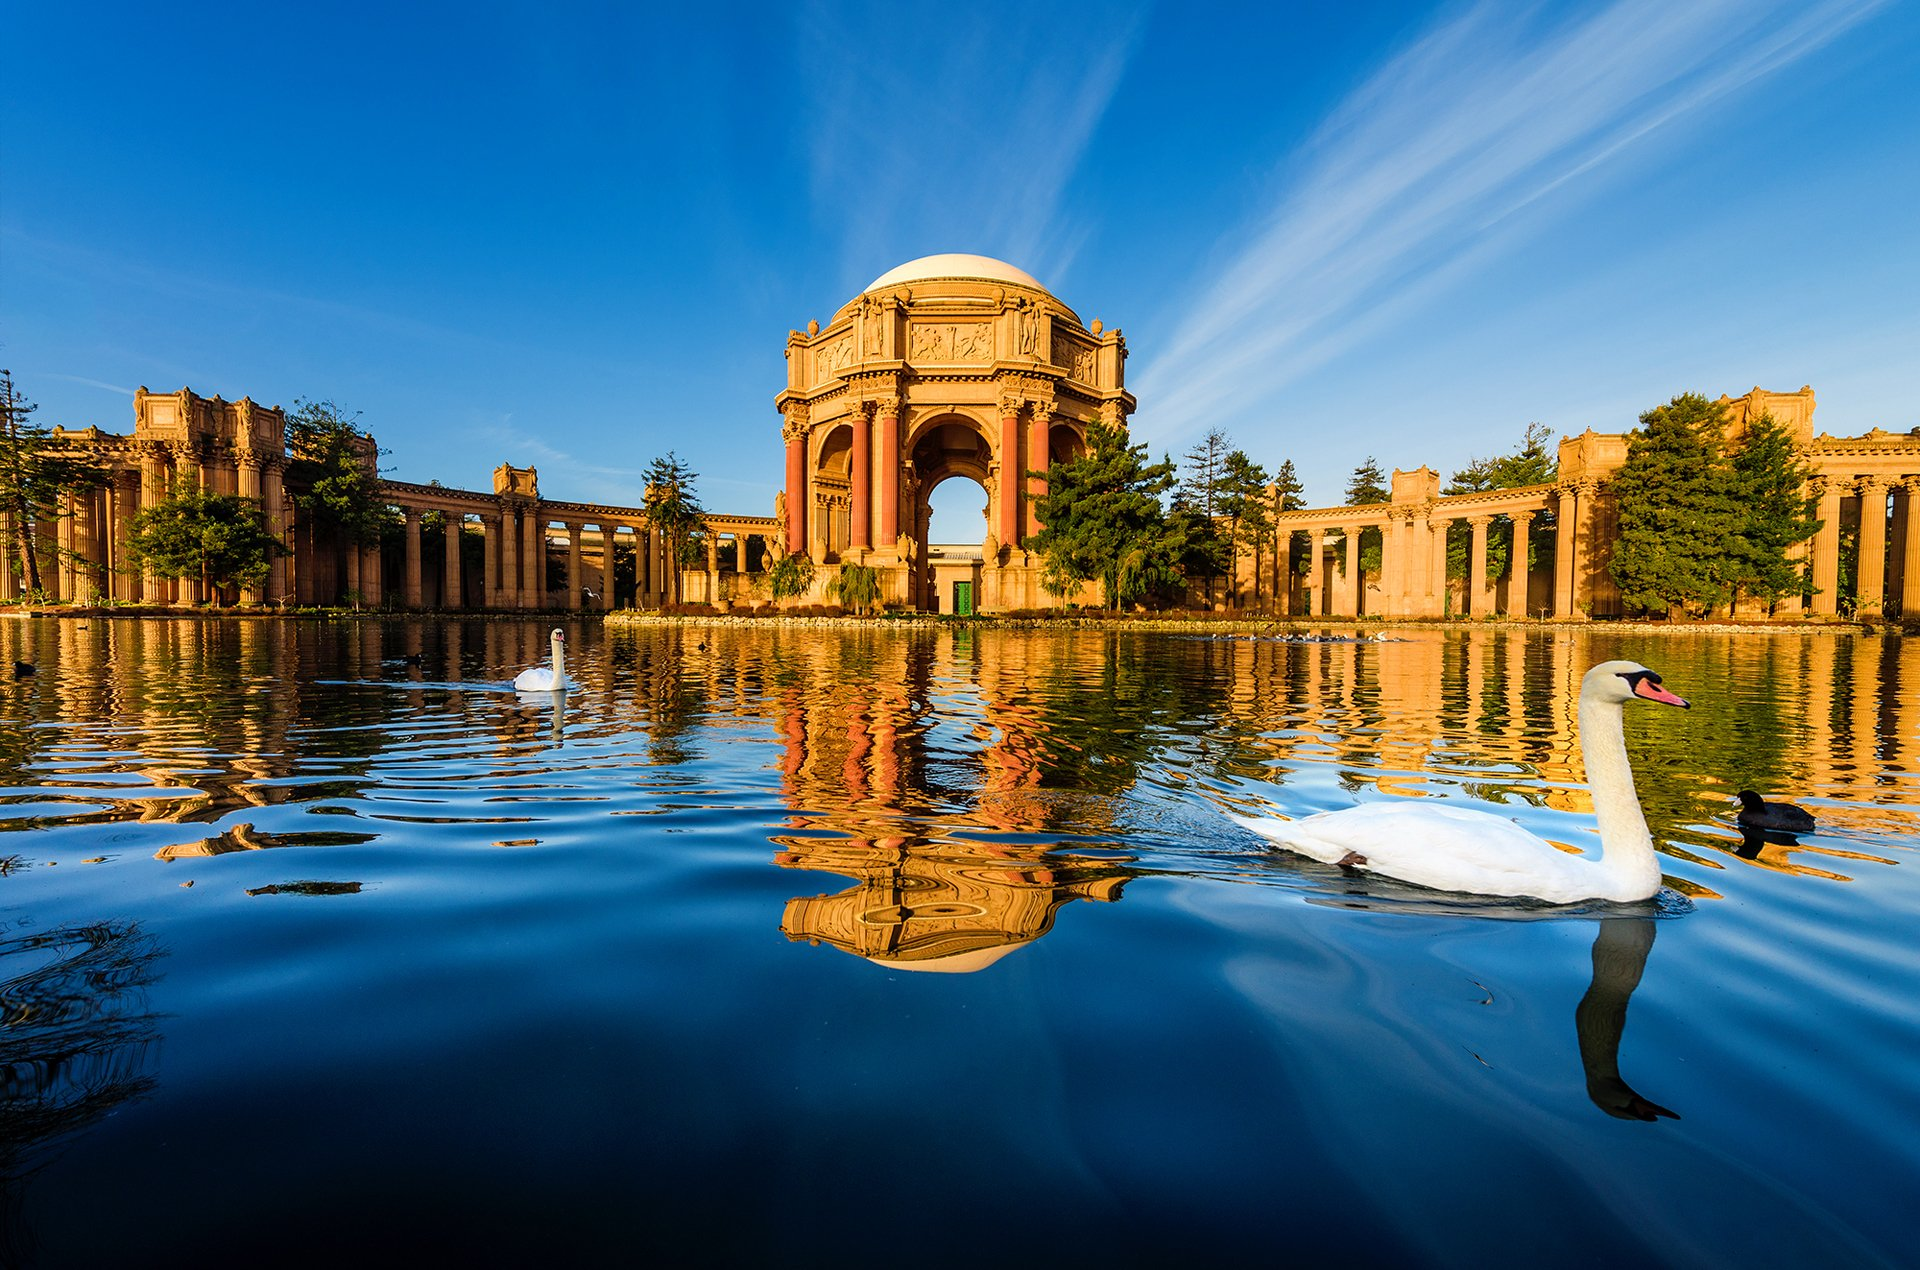 Palace of fine arts in san francisco hd wallpaper background image 1920x1270 id 727021 - San francisco hd ...